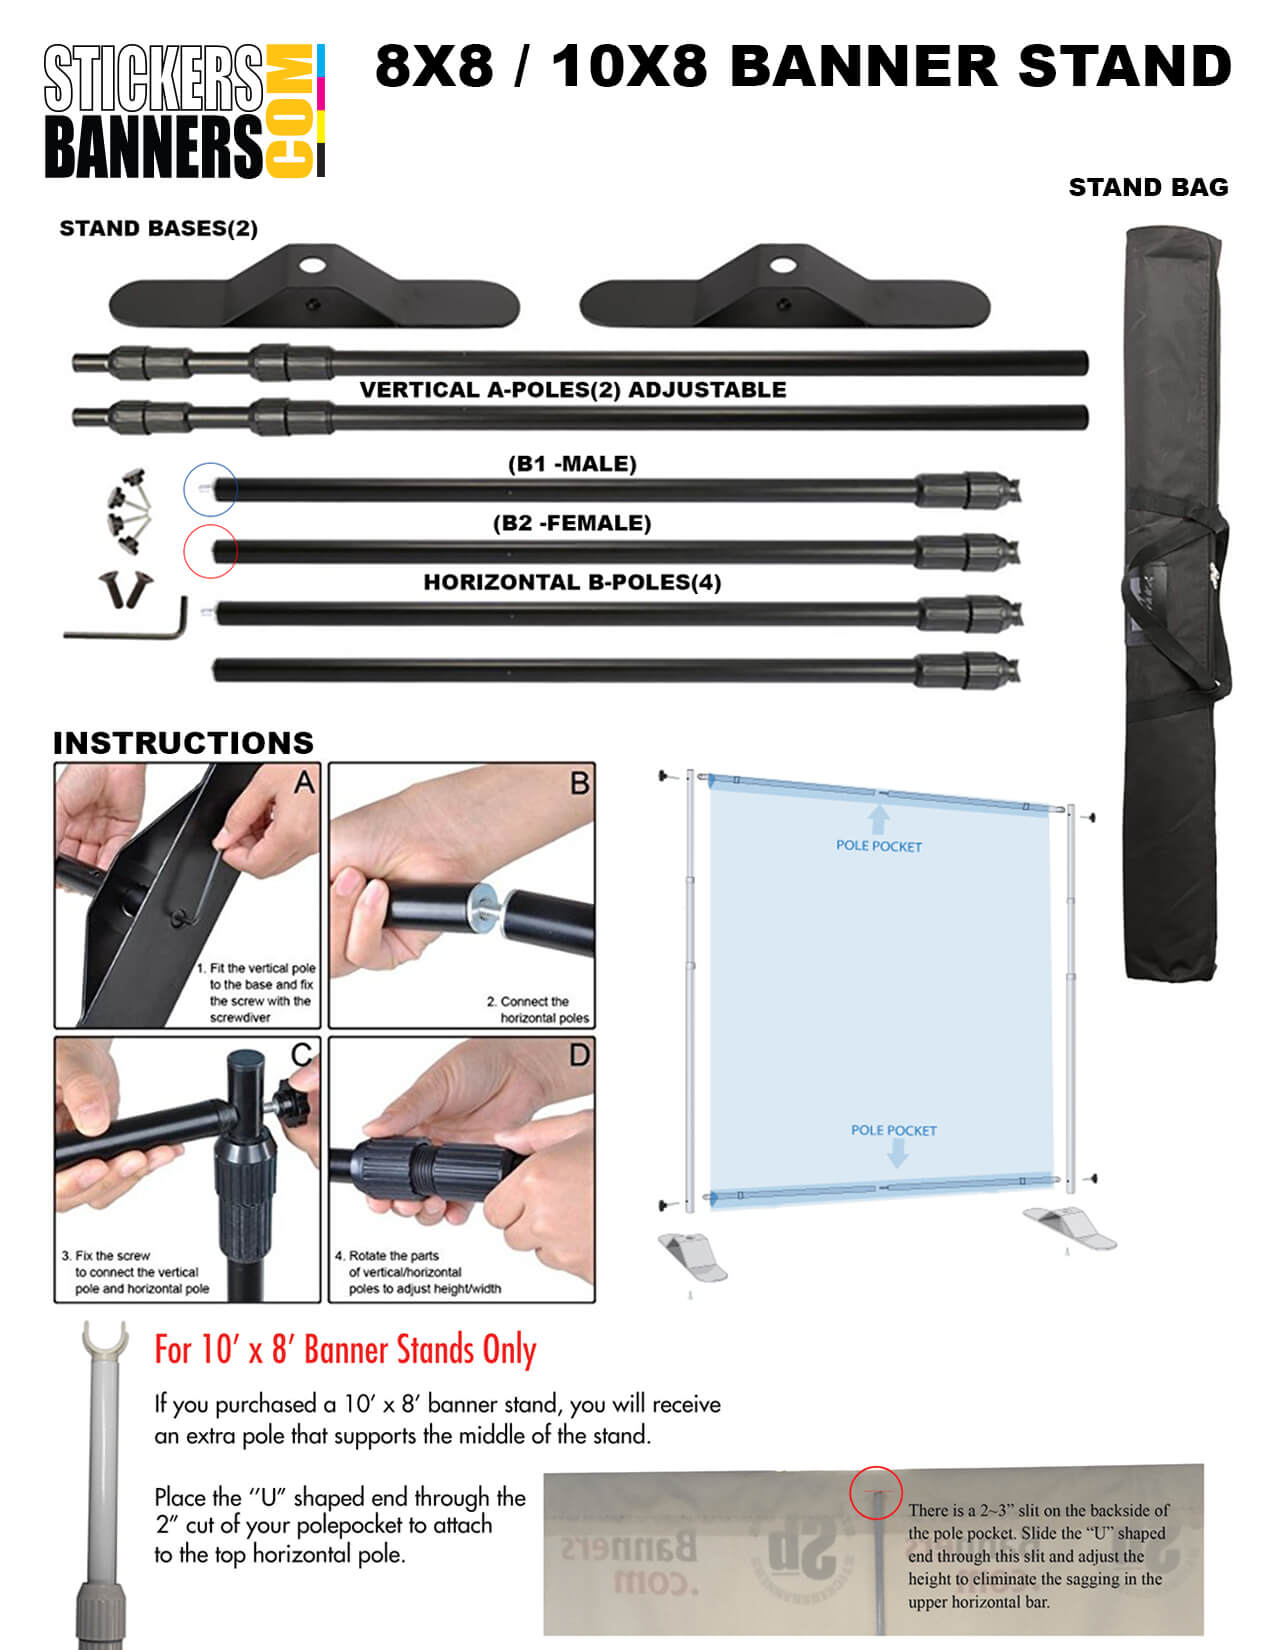 8ft x 8ft and 8ft x 10ft Banner Stand Assembly Instructions